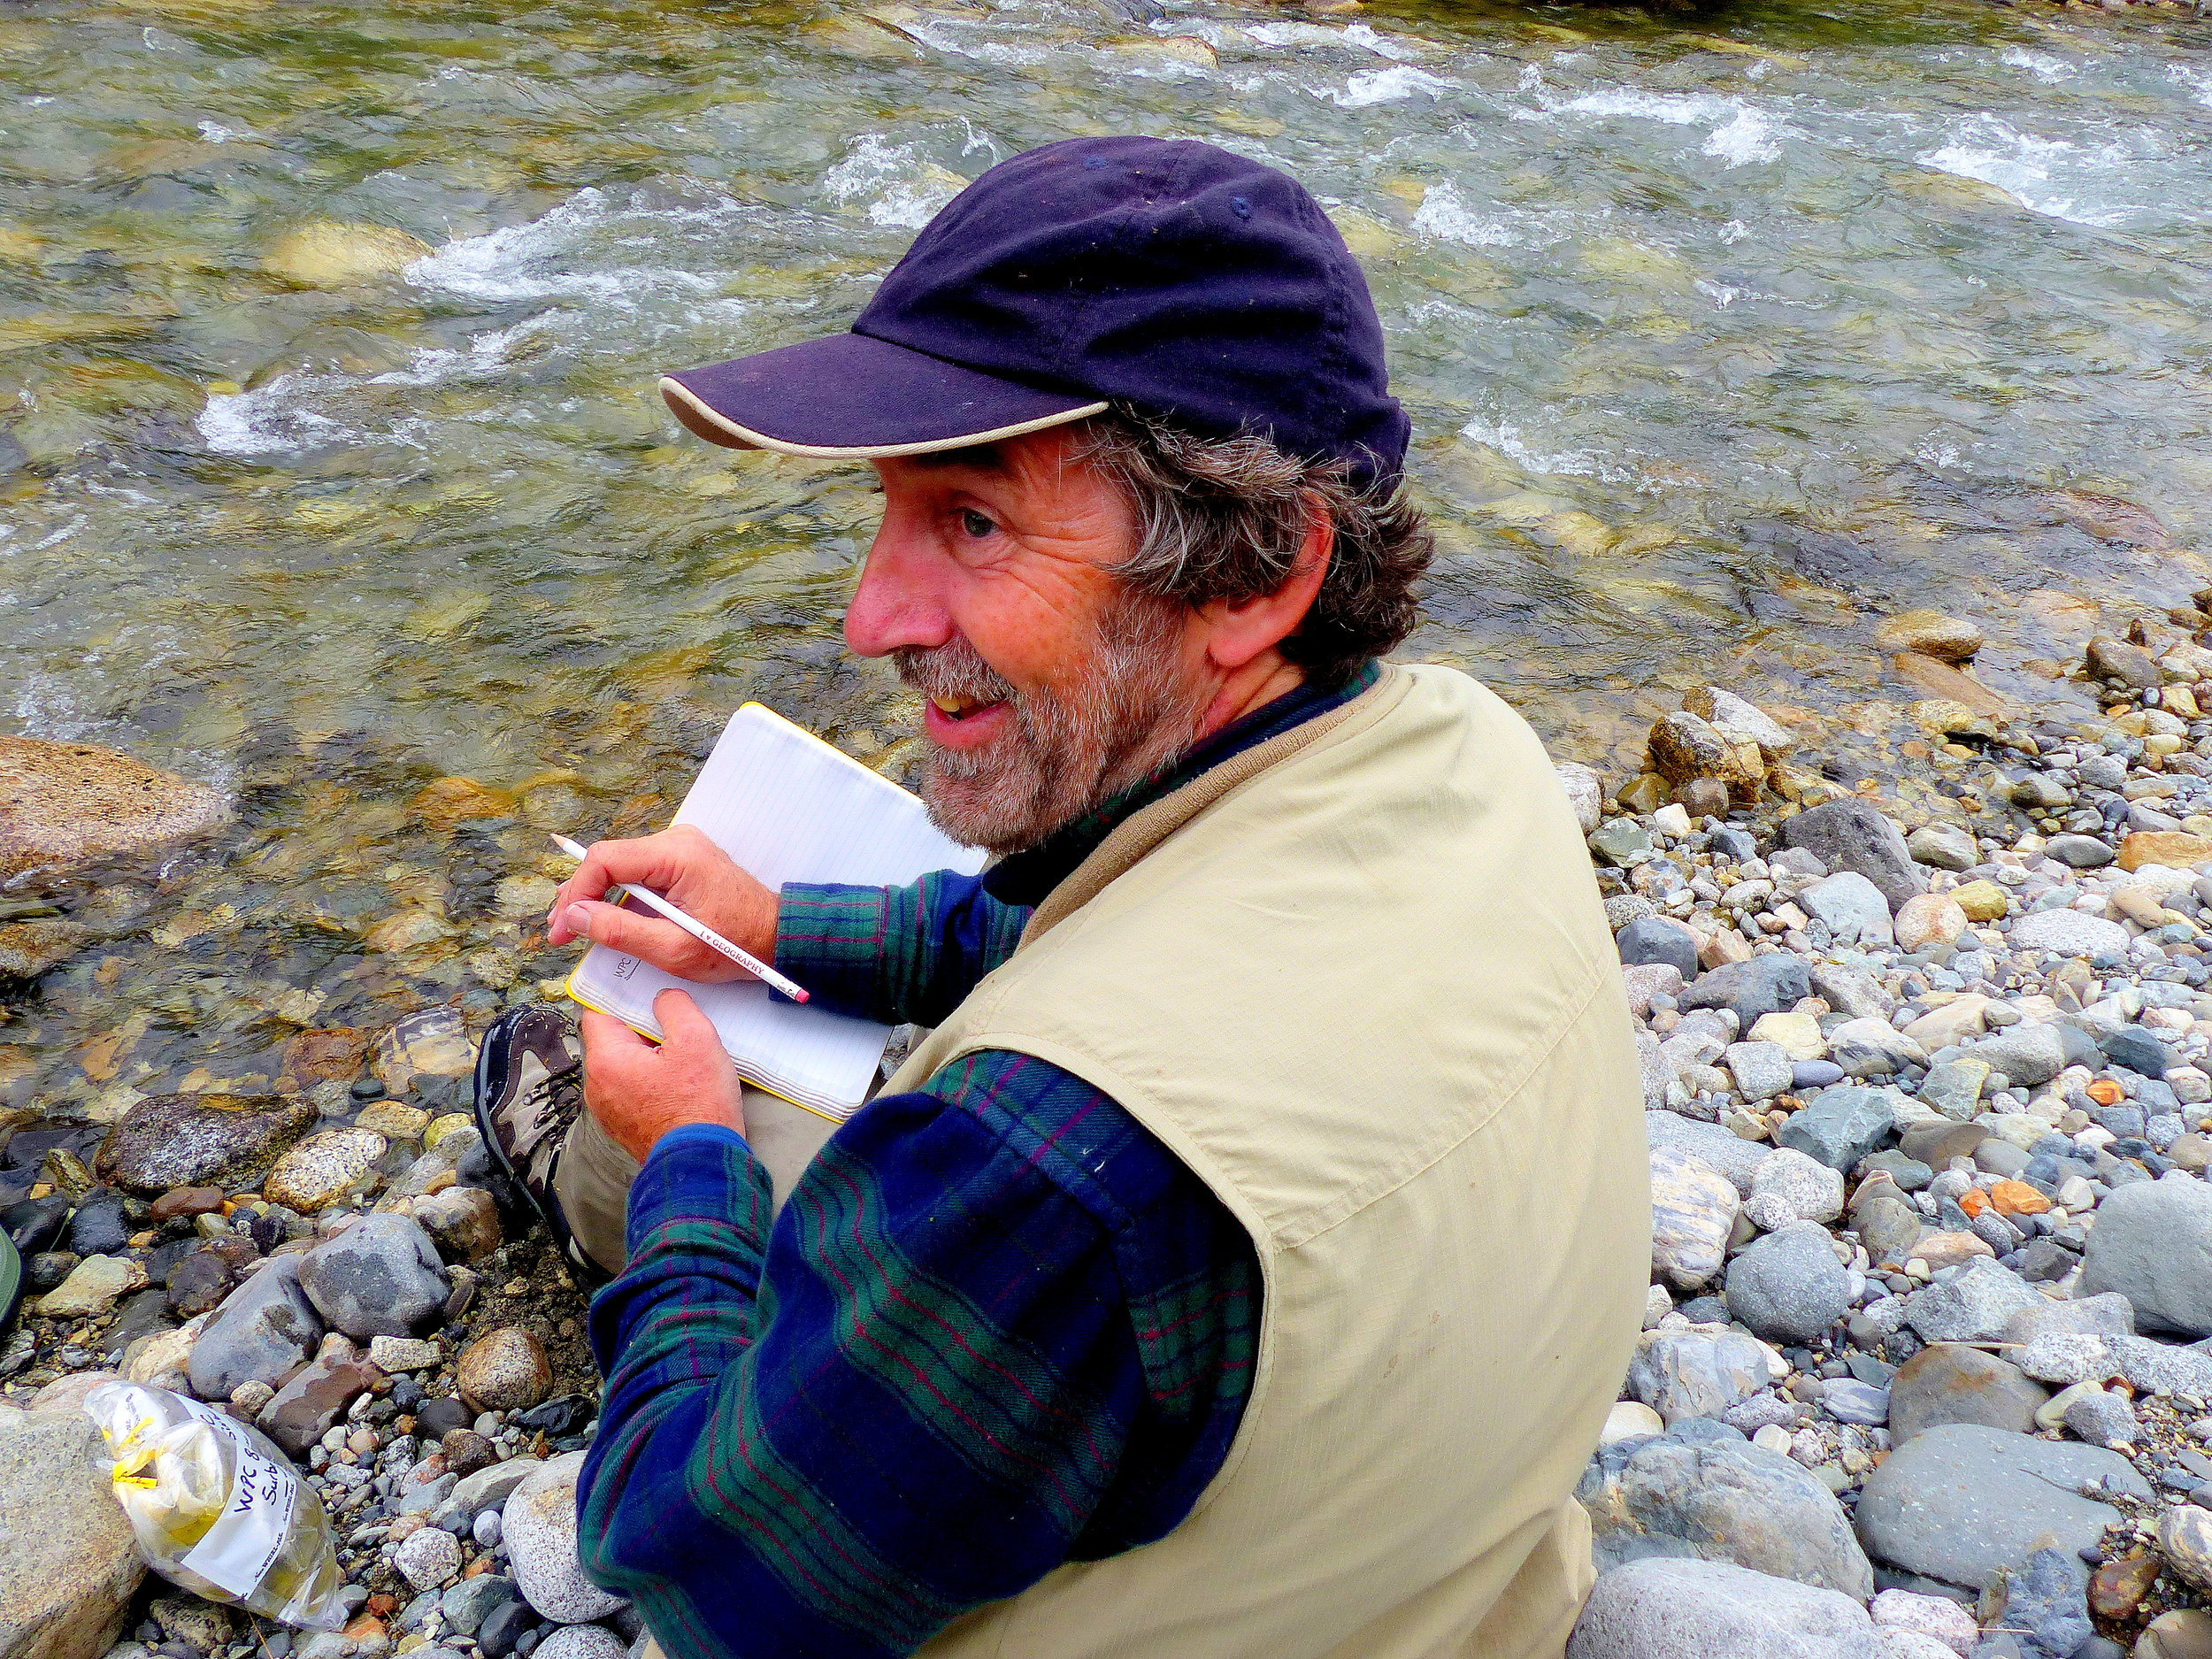 Sandy Milner has studied the development of life in Glacier Bay streams, and he still beams with the pleasure of making new discoveries.